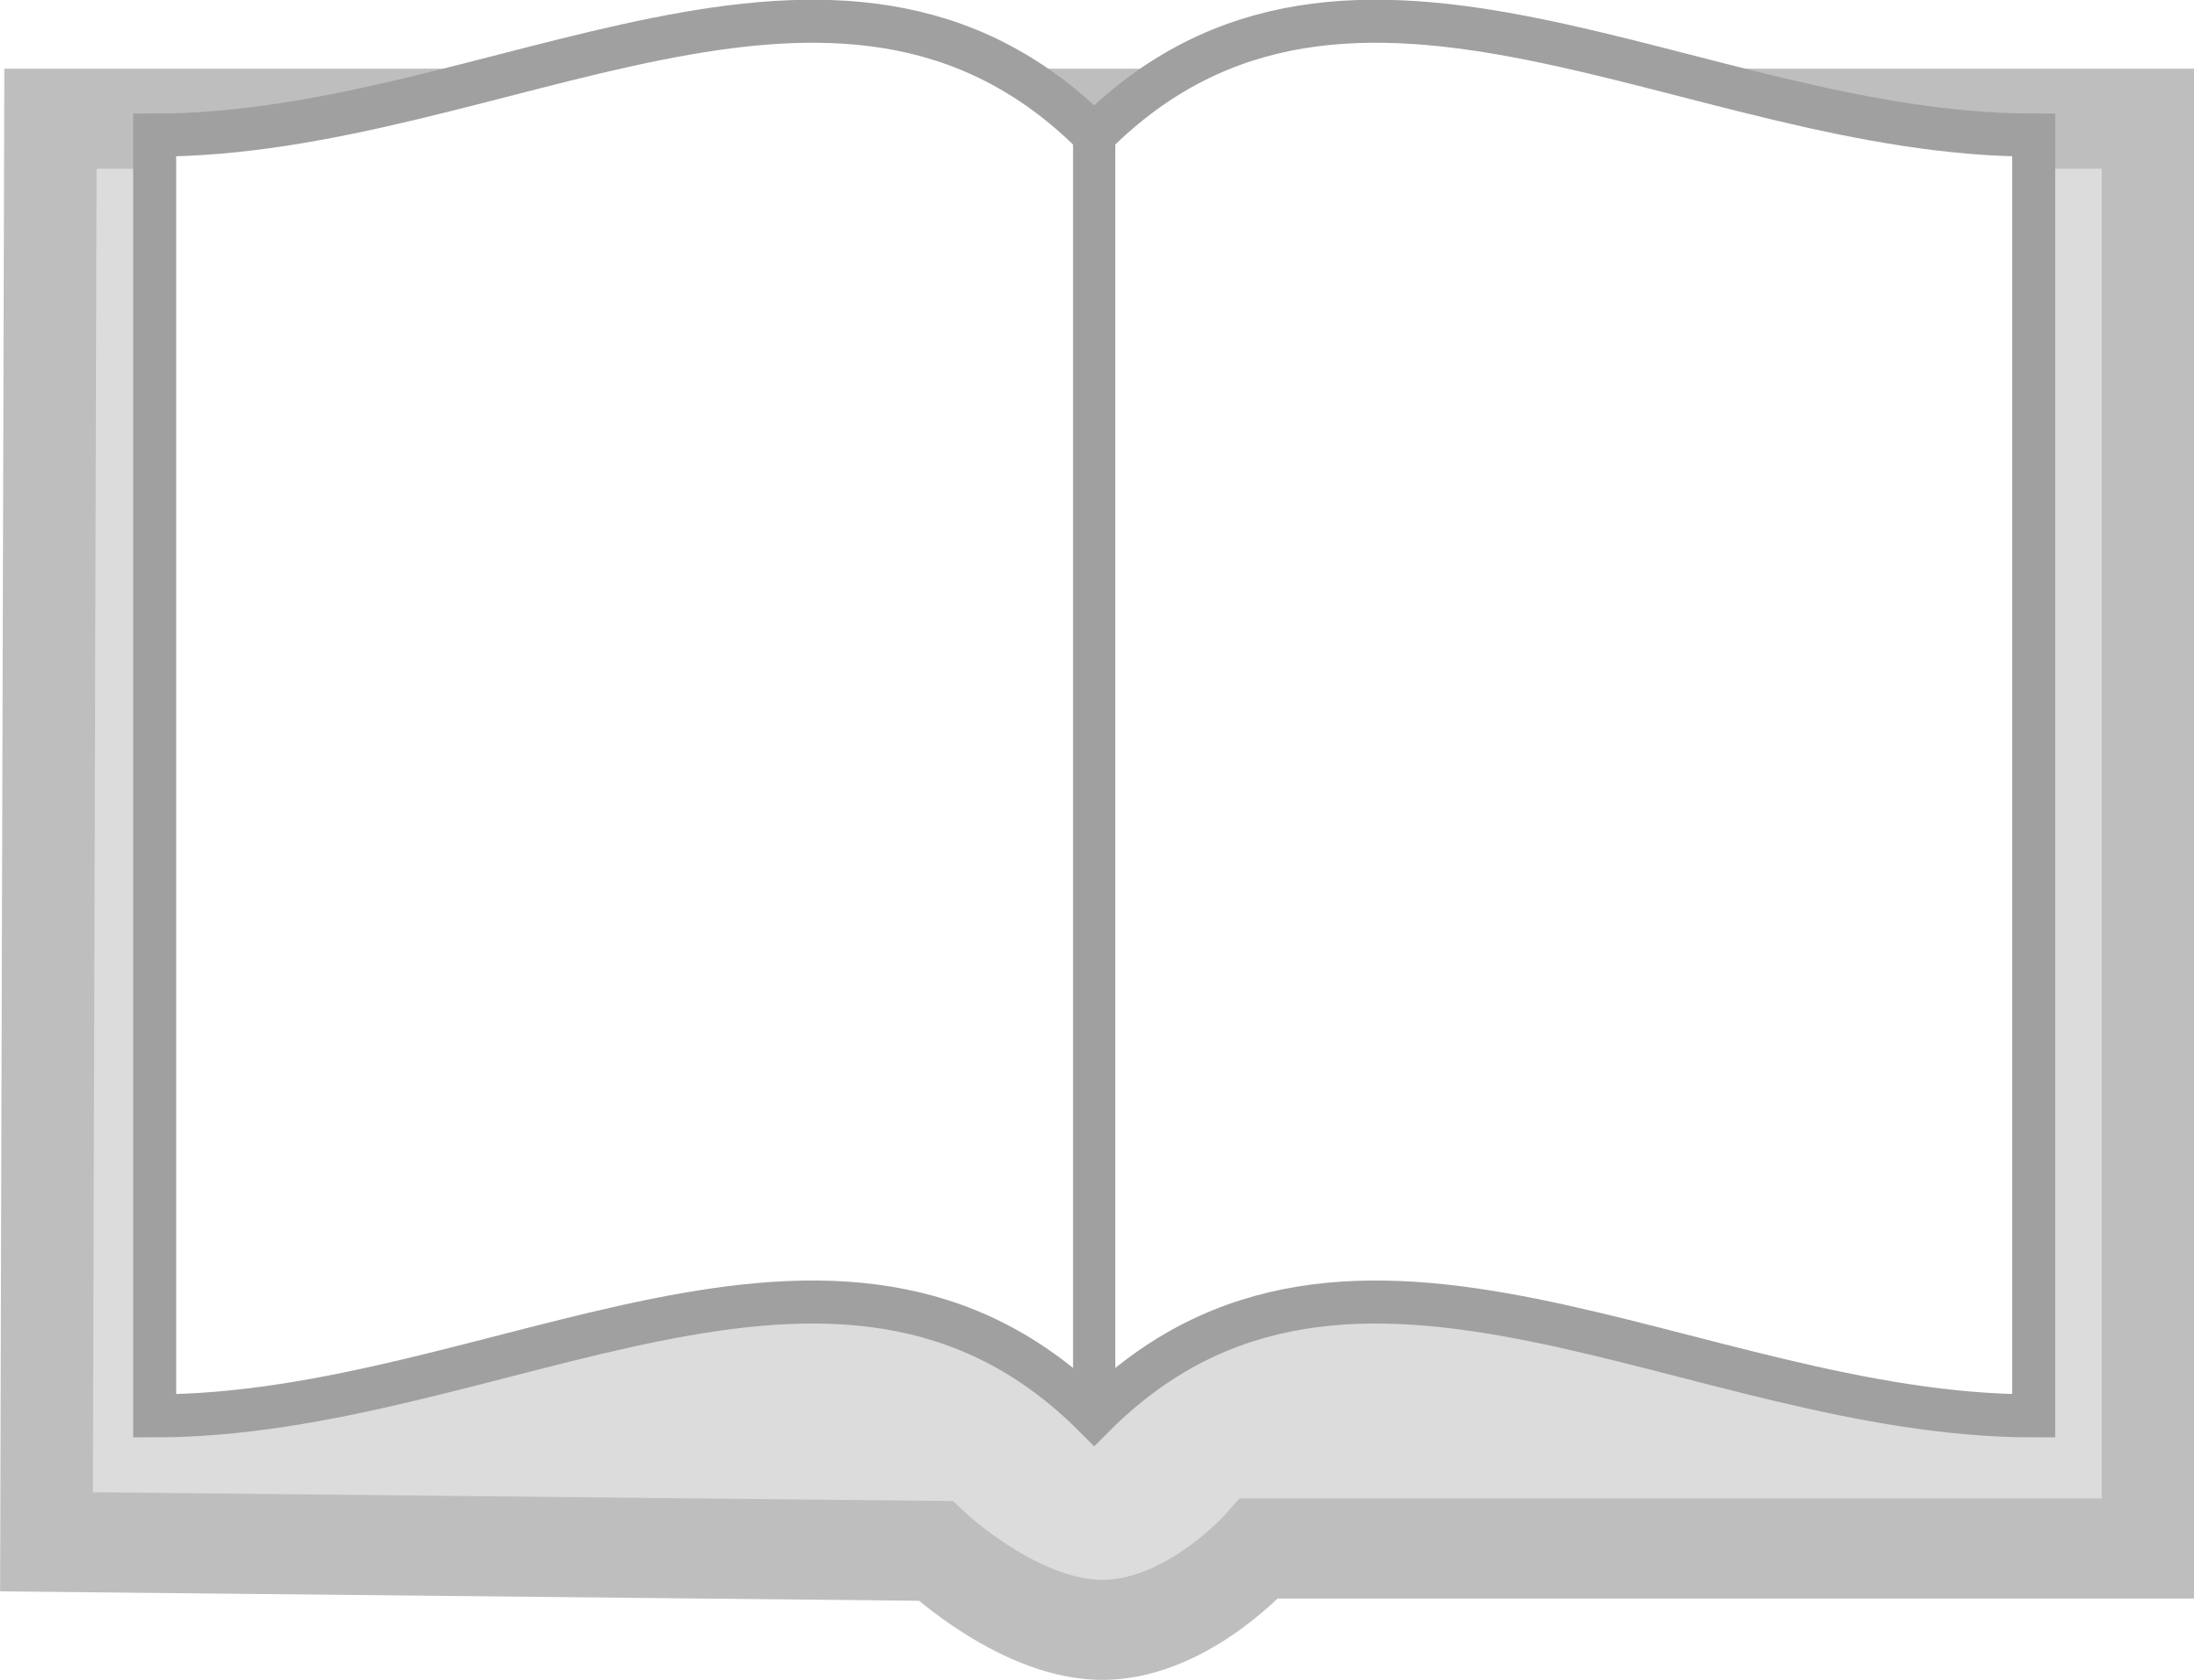 Clipart - Open book (grayscale)